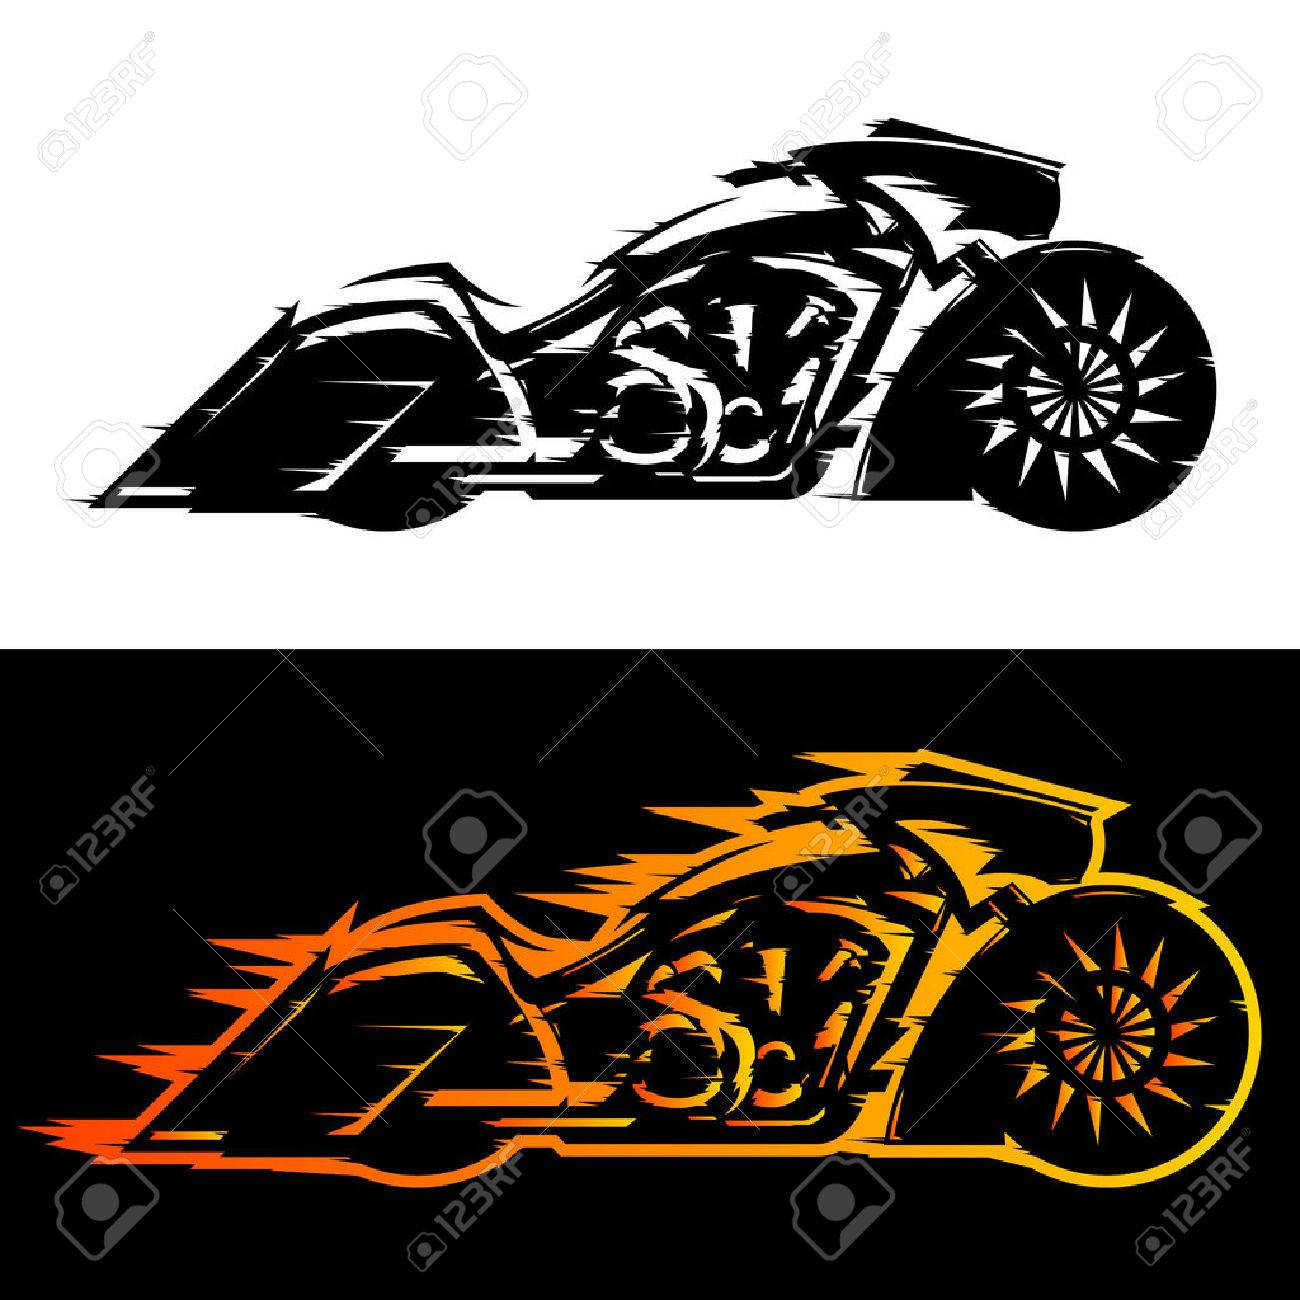 Bagger style motorcycle vector illustration, Baggers custom motorbike covered in flames - 62192100